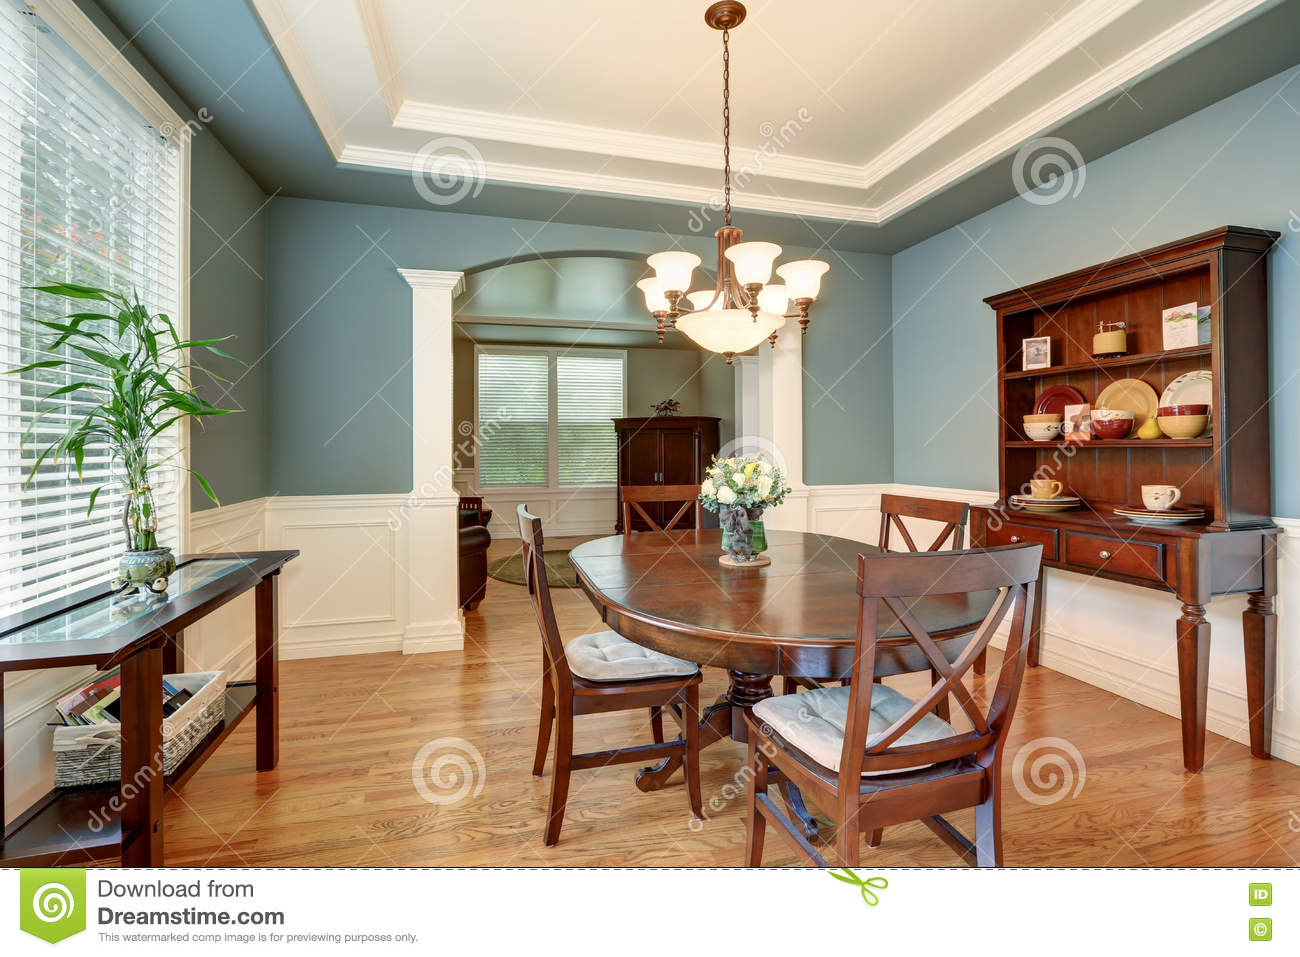 American Classic Dining Room Interior With Green Walls Corner Architect